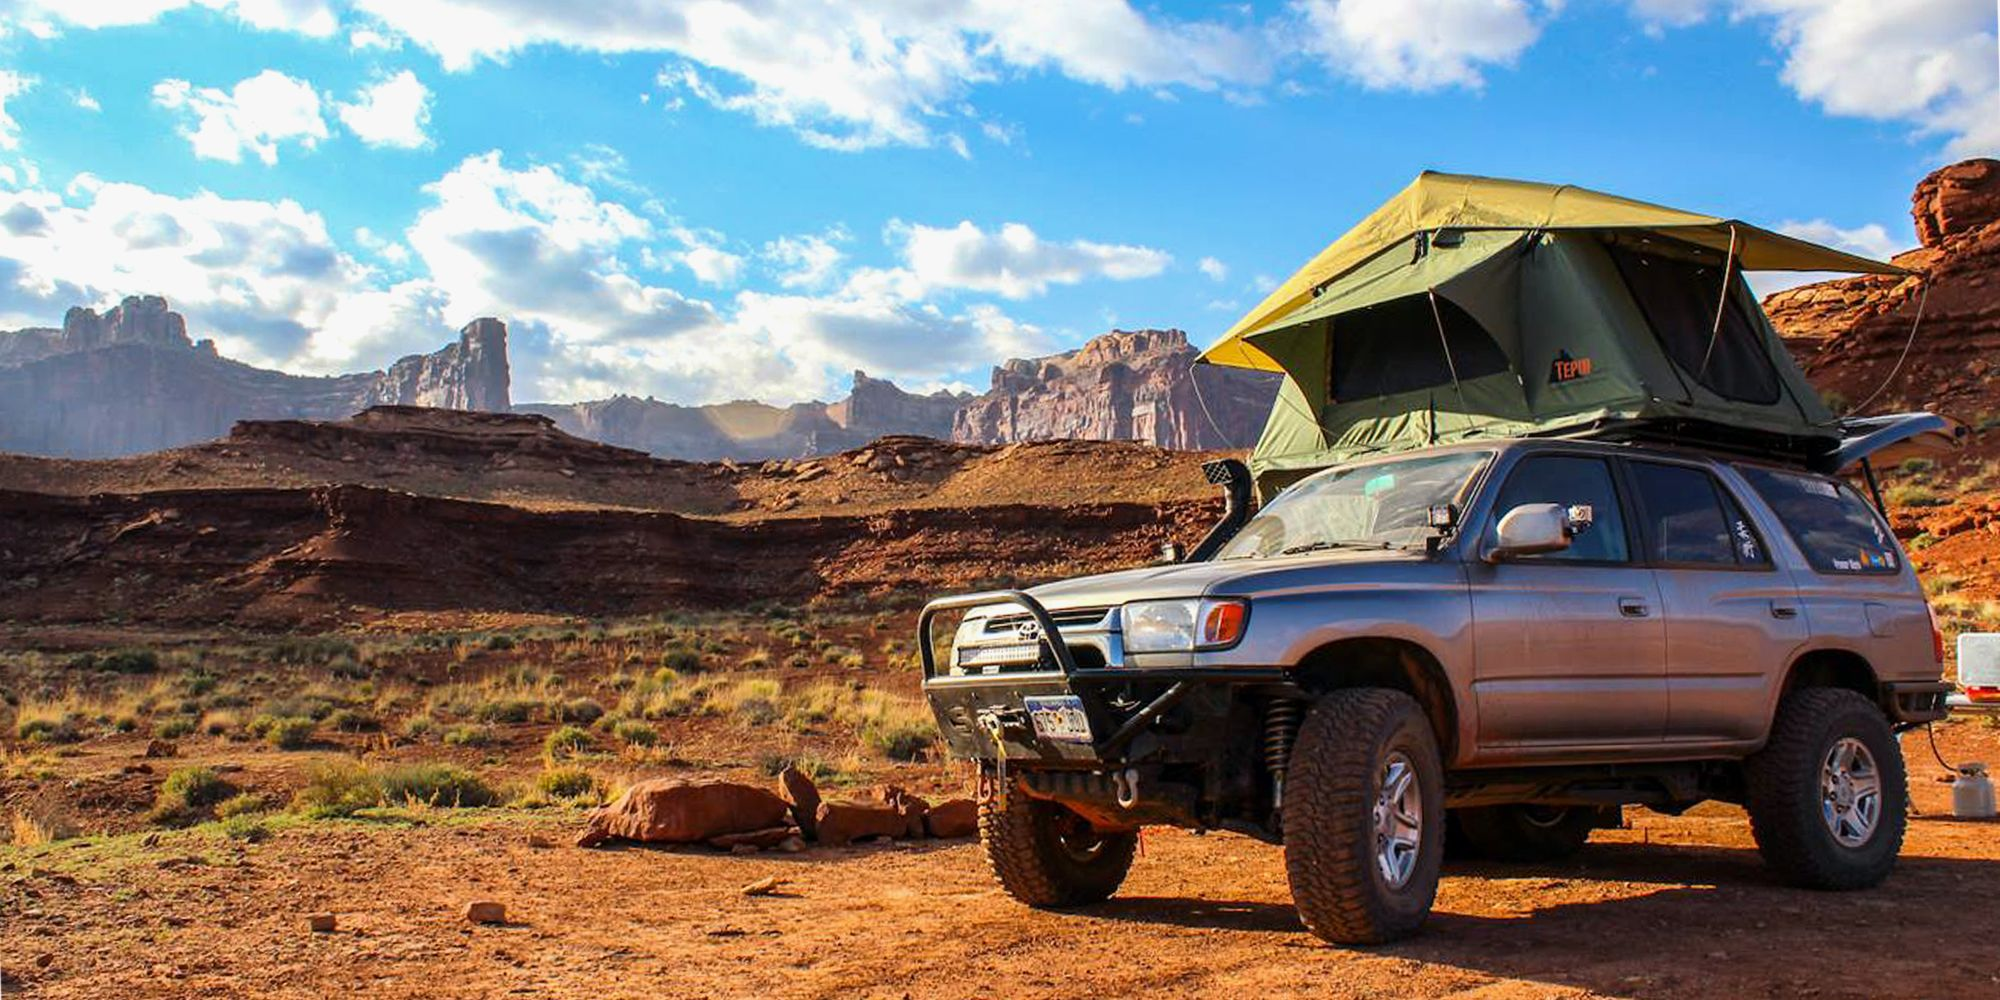 8 Best Roof Top Tents for C&ing in 2018 - Roof Tents for Your Car or Jeep & 8 Best Roof Top Tents for Camping in 2018 - Roof Tents for Your ...